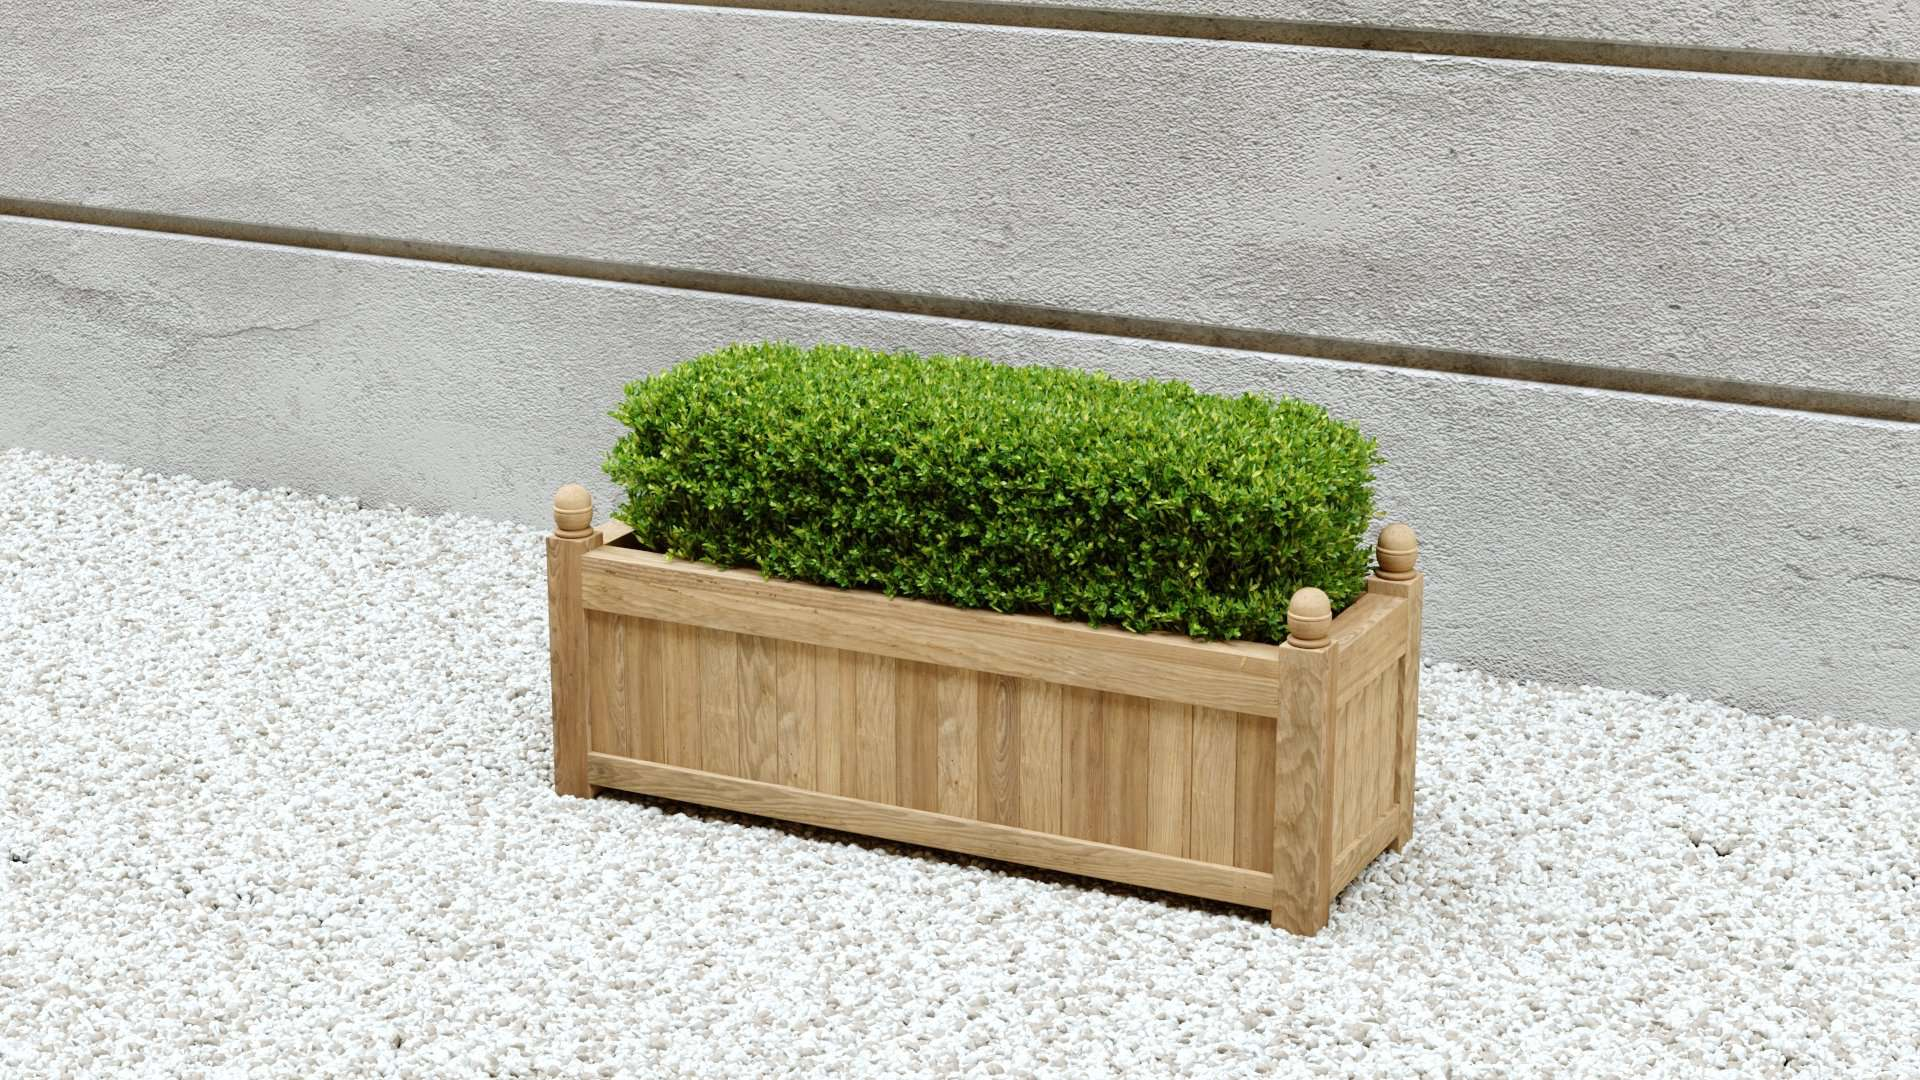 Rectangular Teak Planter  90 x 50 x 45cm  - Chic Teak® | Luxury Teak Furniture